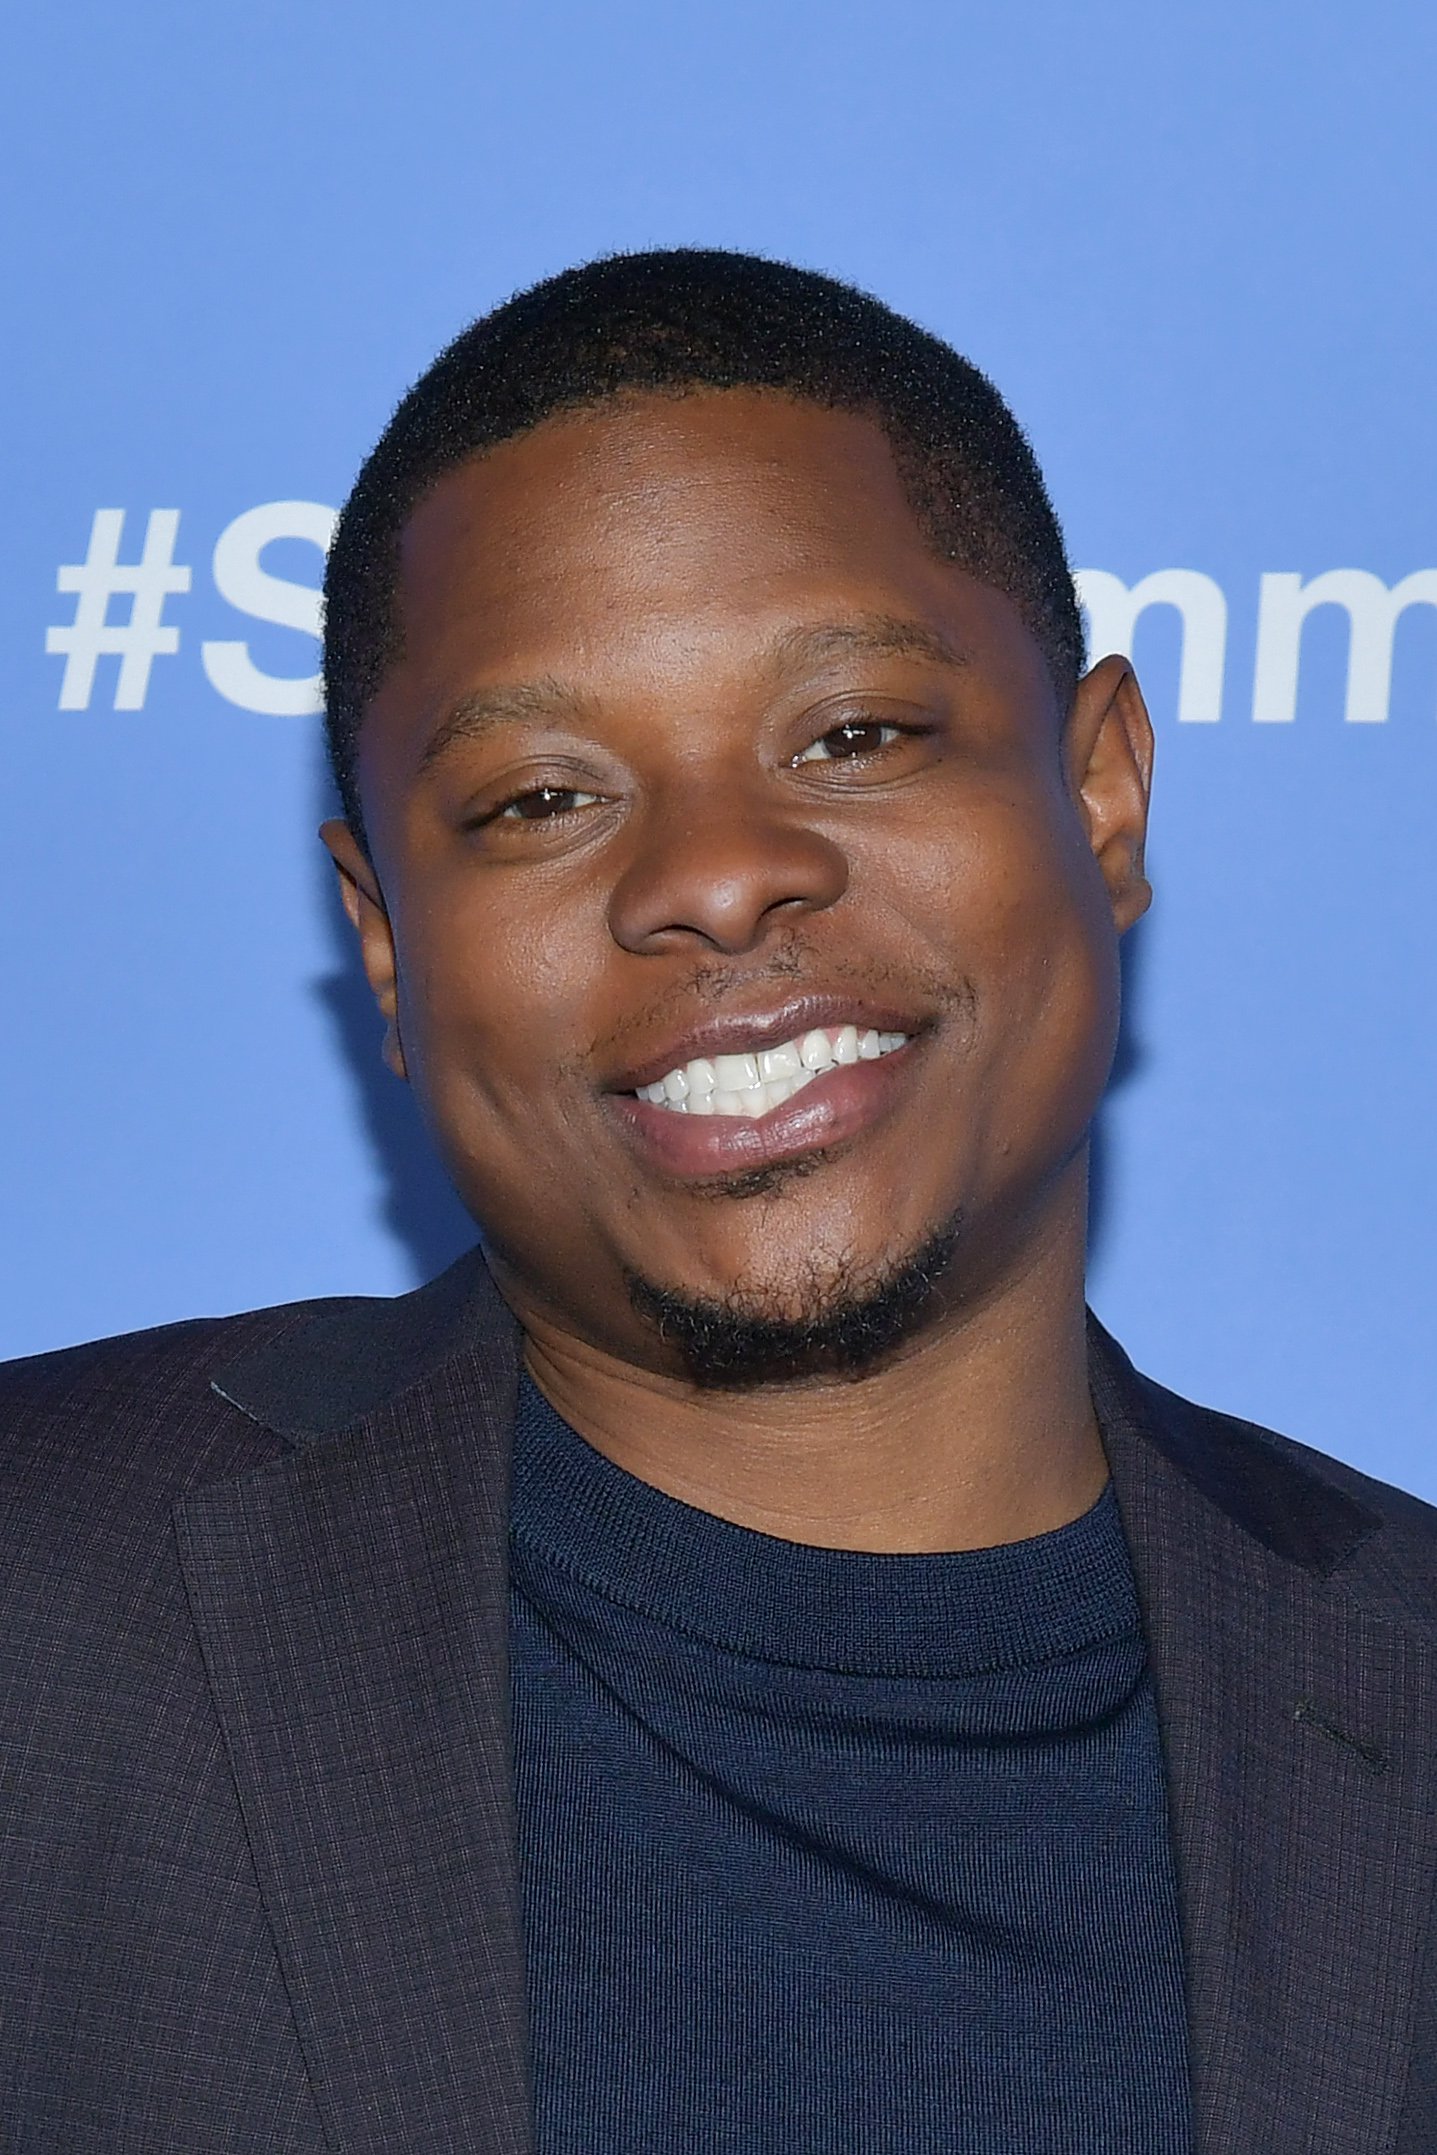 Jason Mitchell Is Getting Booted From 'The Chi' And Dropped By His Agency Over Misconduct Allegations